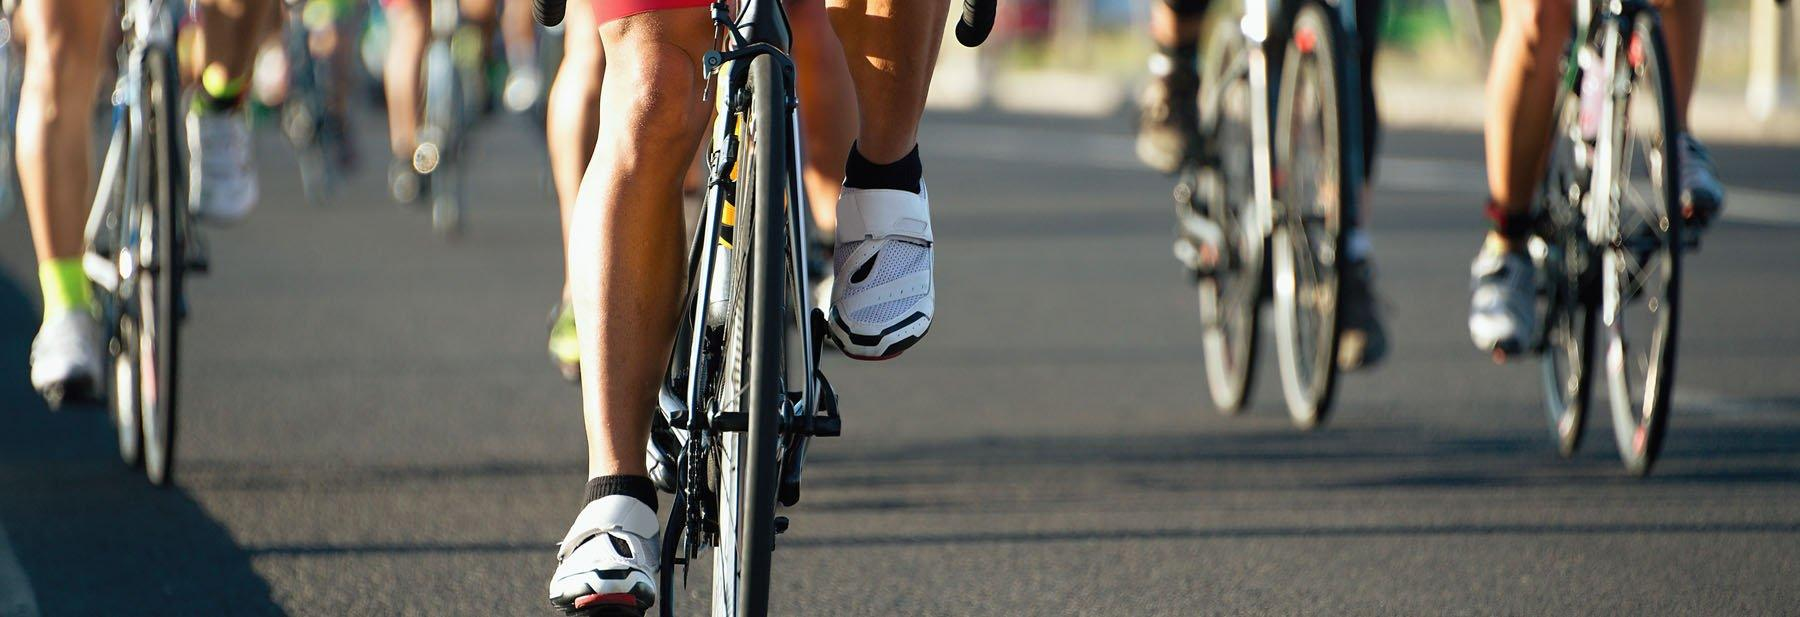 Cycling Management Software for Clubs